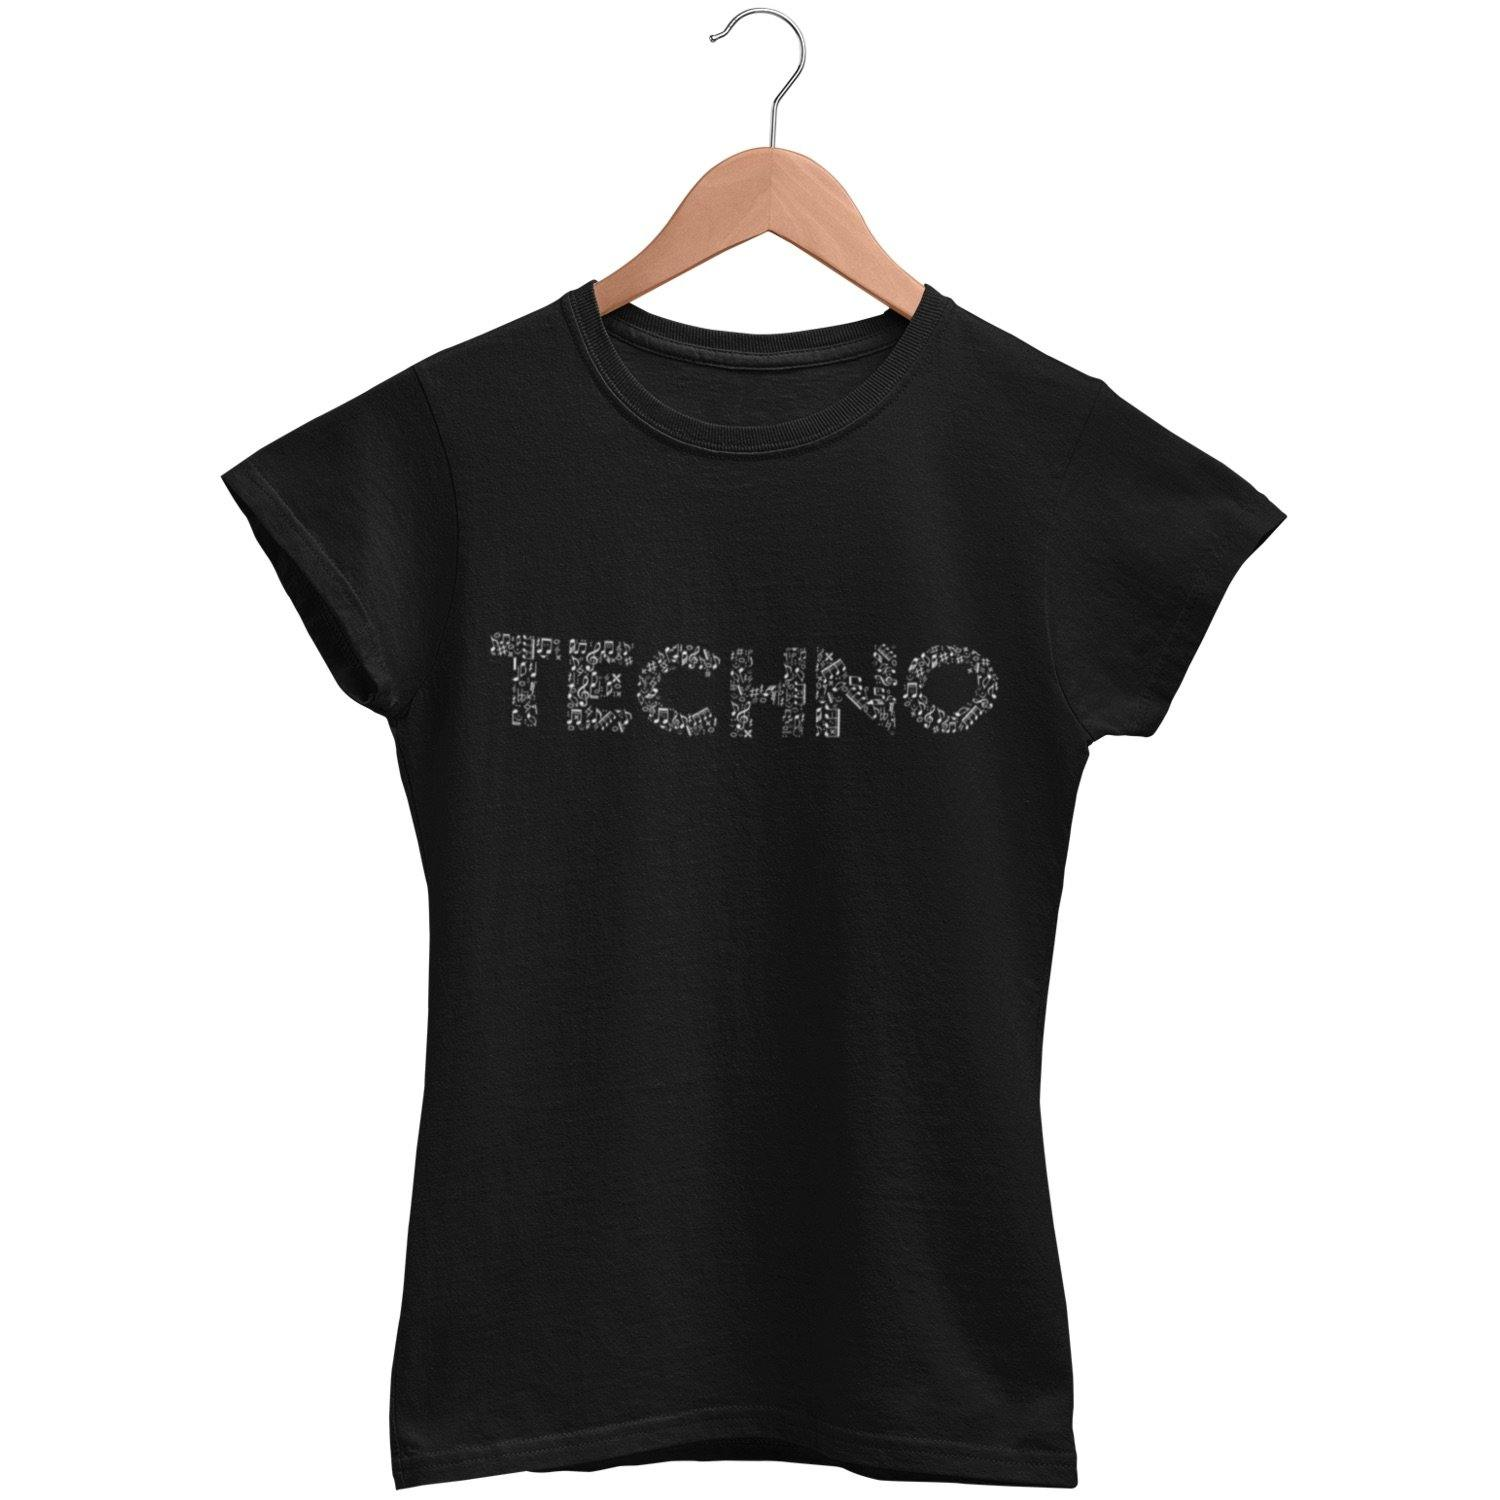 Classic Fit T-shirt Techno Music Notes | Techno Outfit